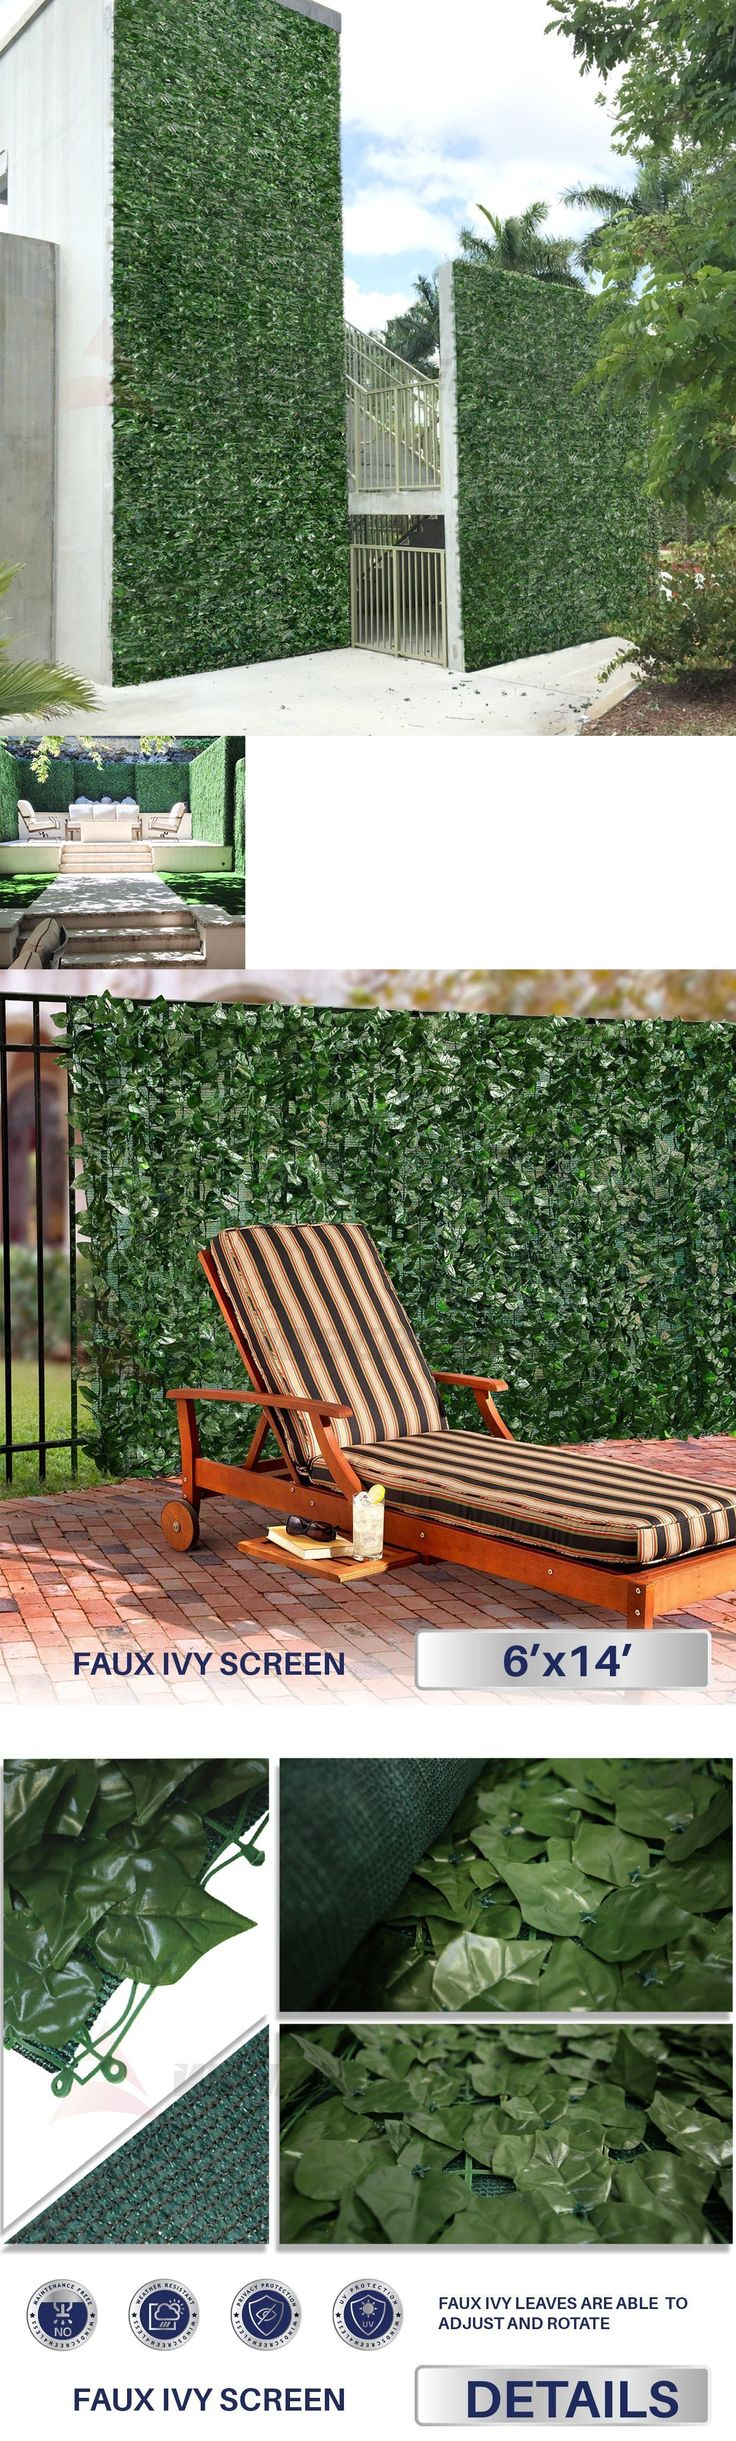 Floral D cor 4959: Artificial Ivy Leaf Hedge Mat Fence Fake Plant Grass Wall Outdoor Topiary Panels -> BUY IT NOW ONLY: $86.36 on eBay!